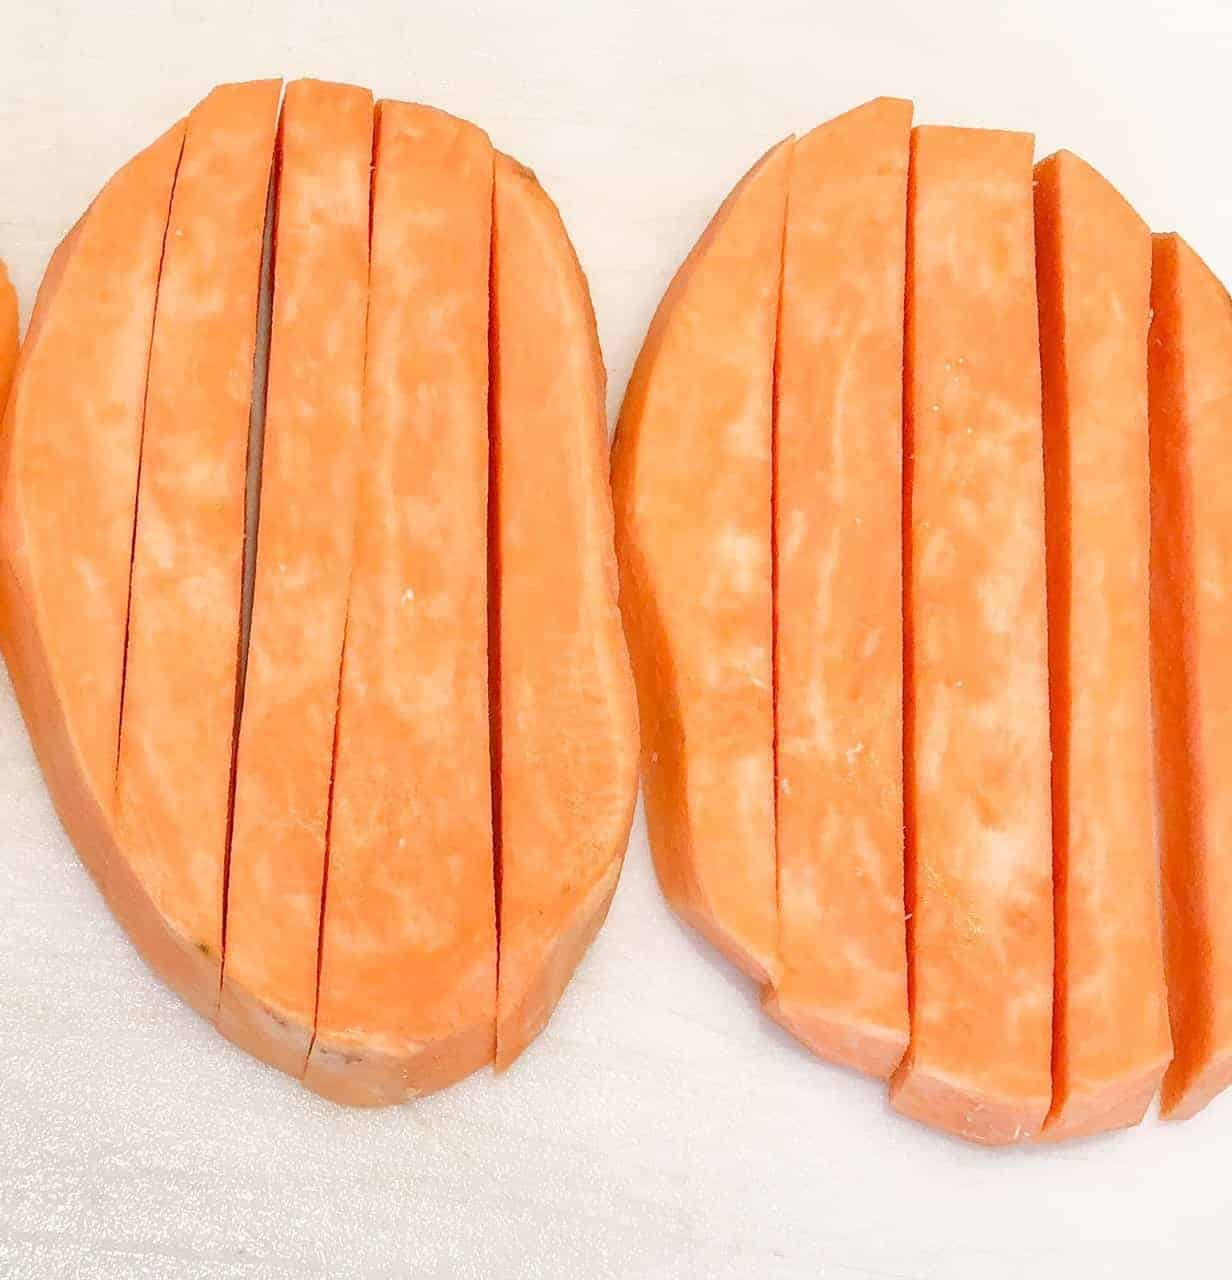 Cut sweet potato into ¼-inch french fries